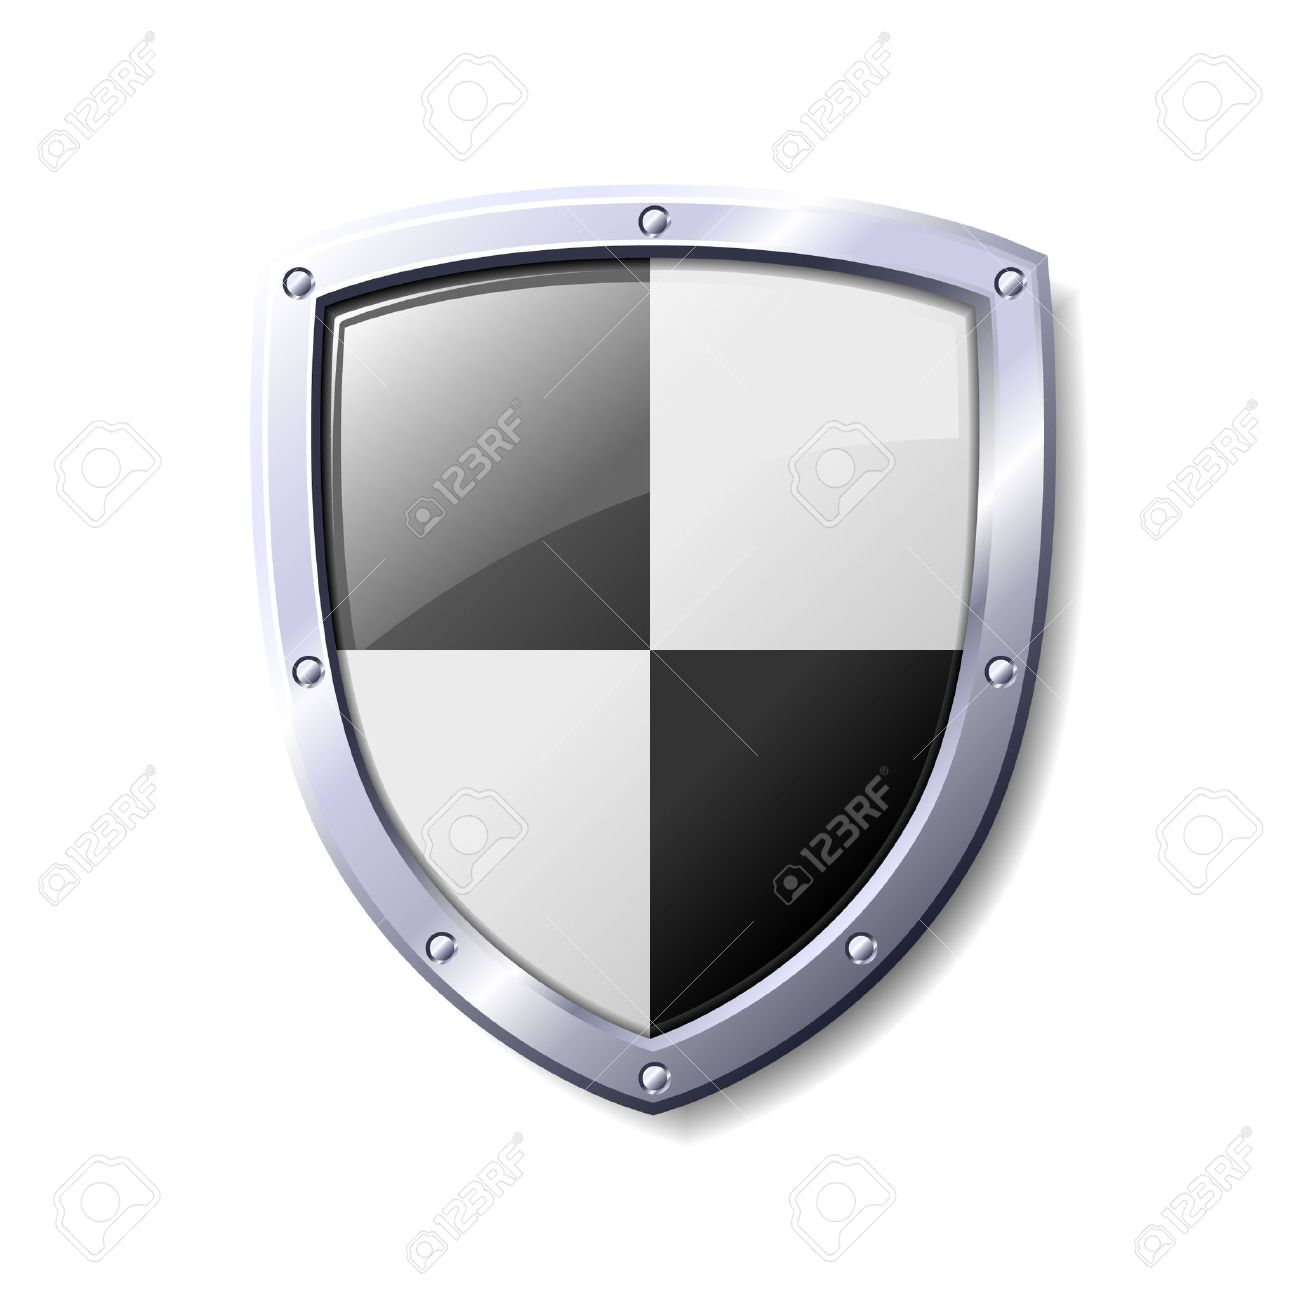 Black and white shield. Available in jpeg and eps8 formats. - 5535502